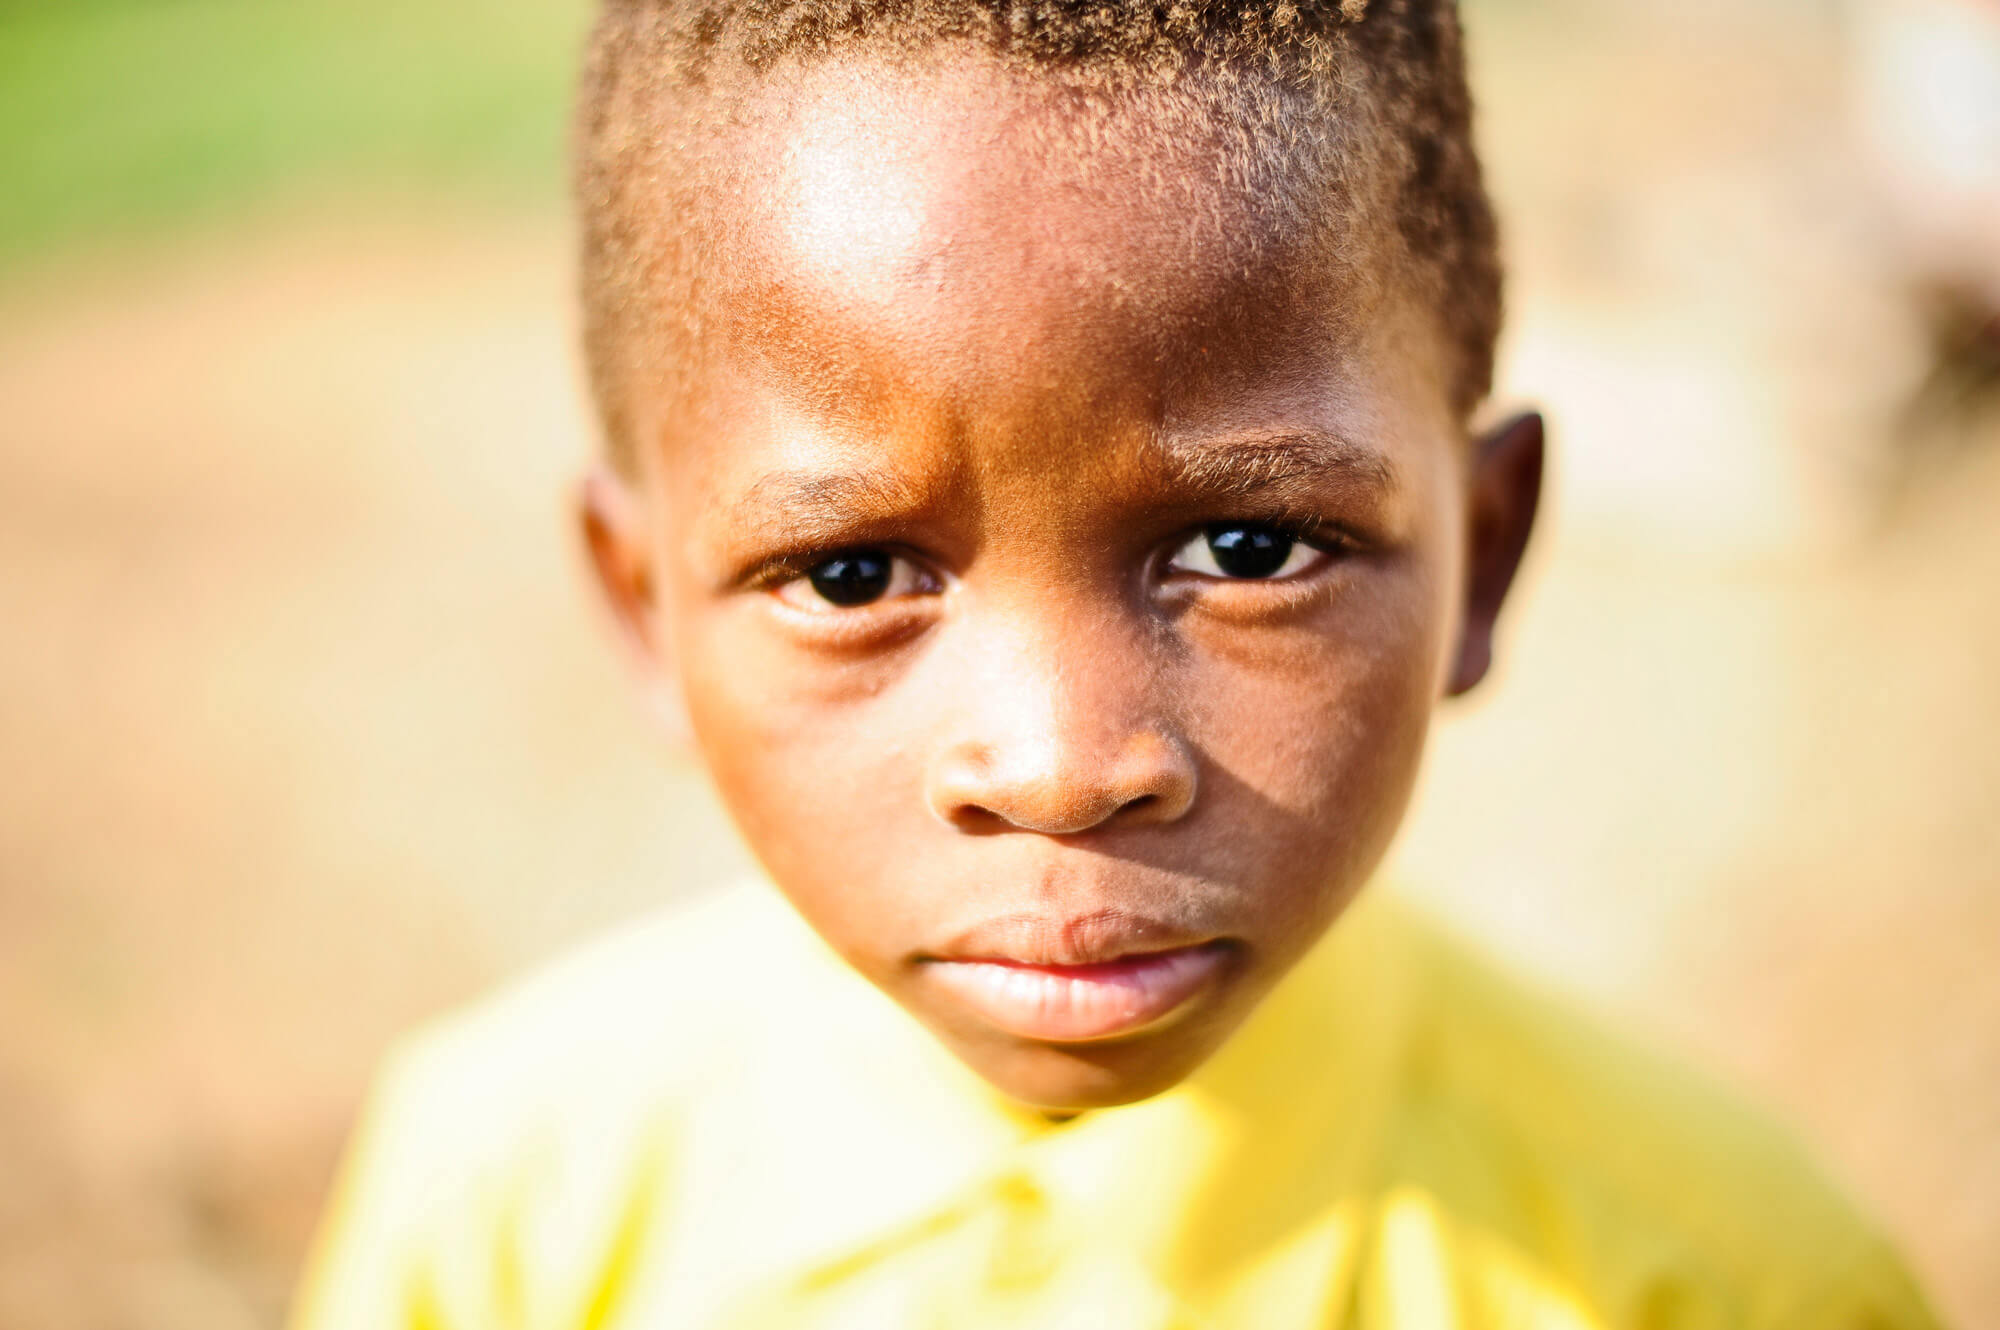 soweto-young-boy-portrait-photography-brandon-barnard.jpg